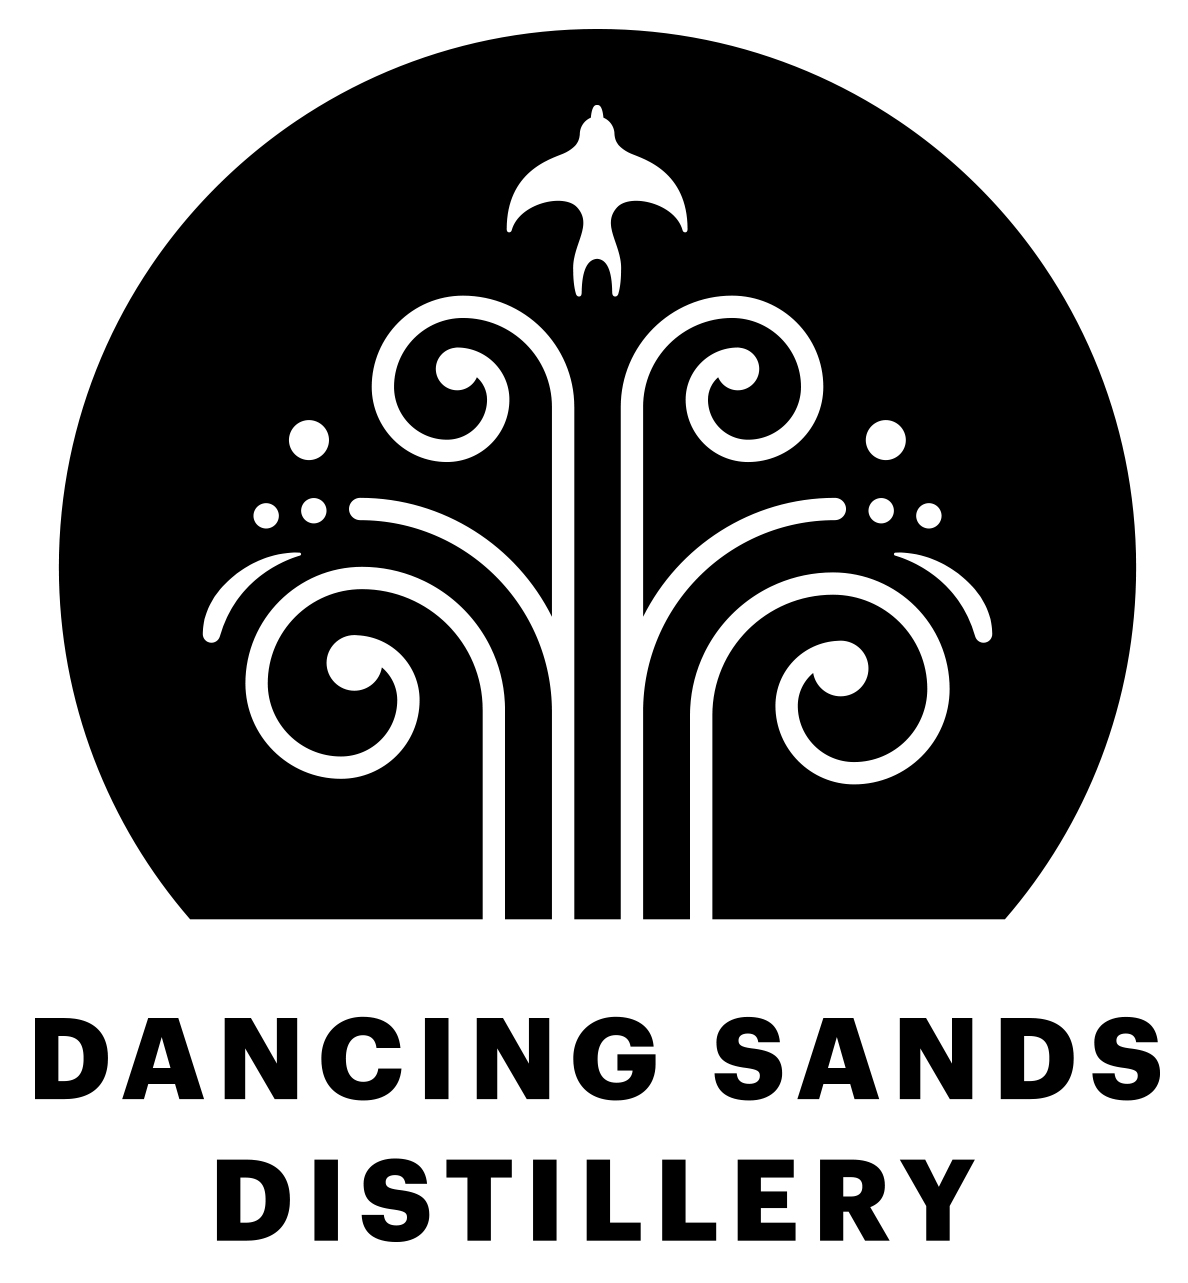 Dancing Sands Distillery